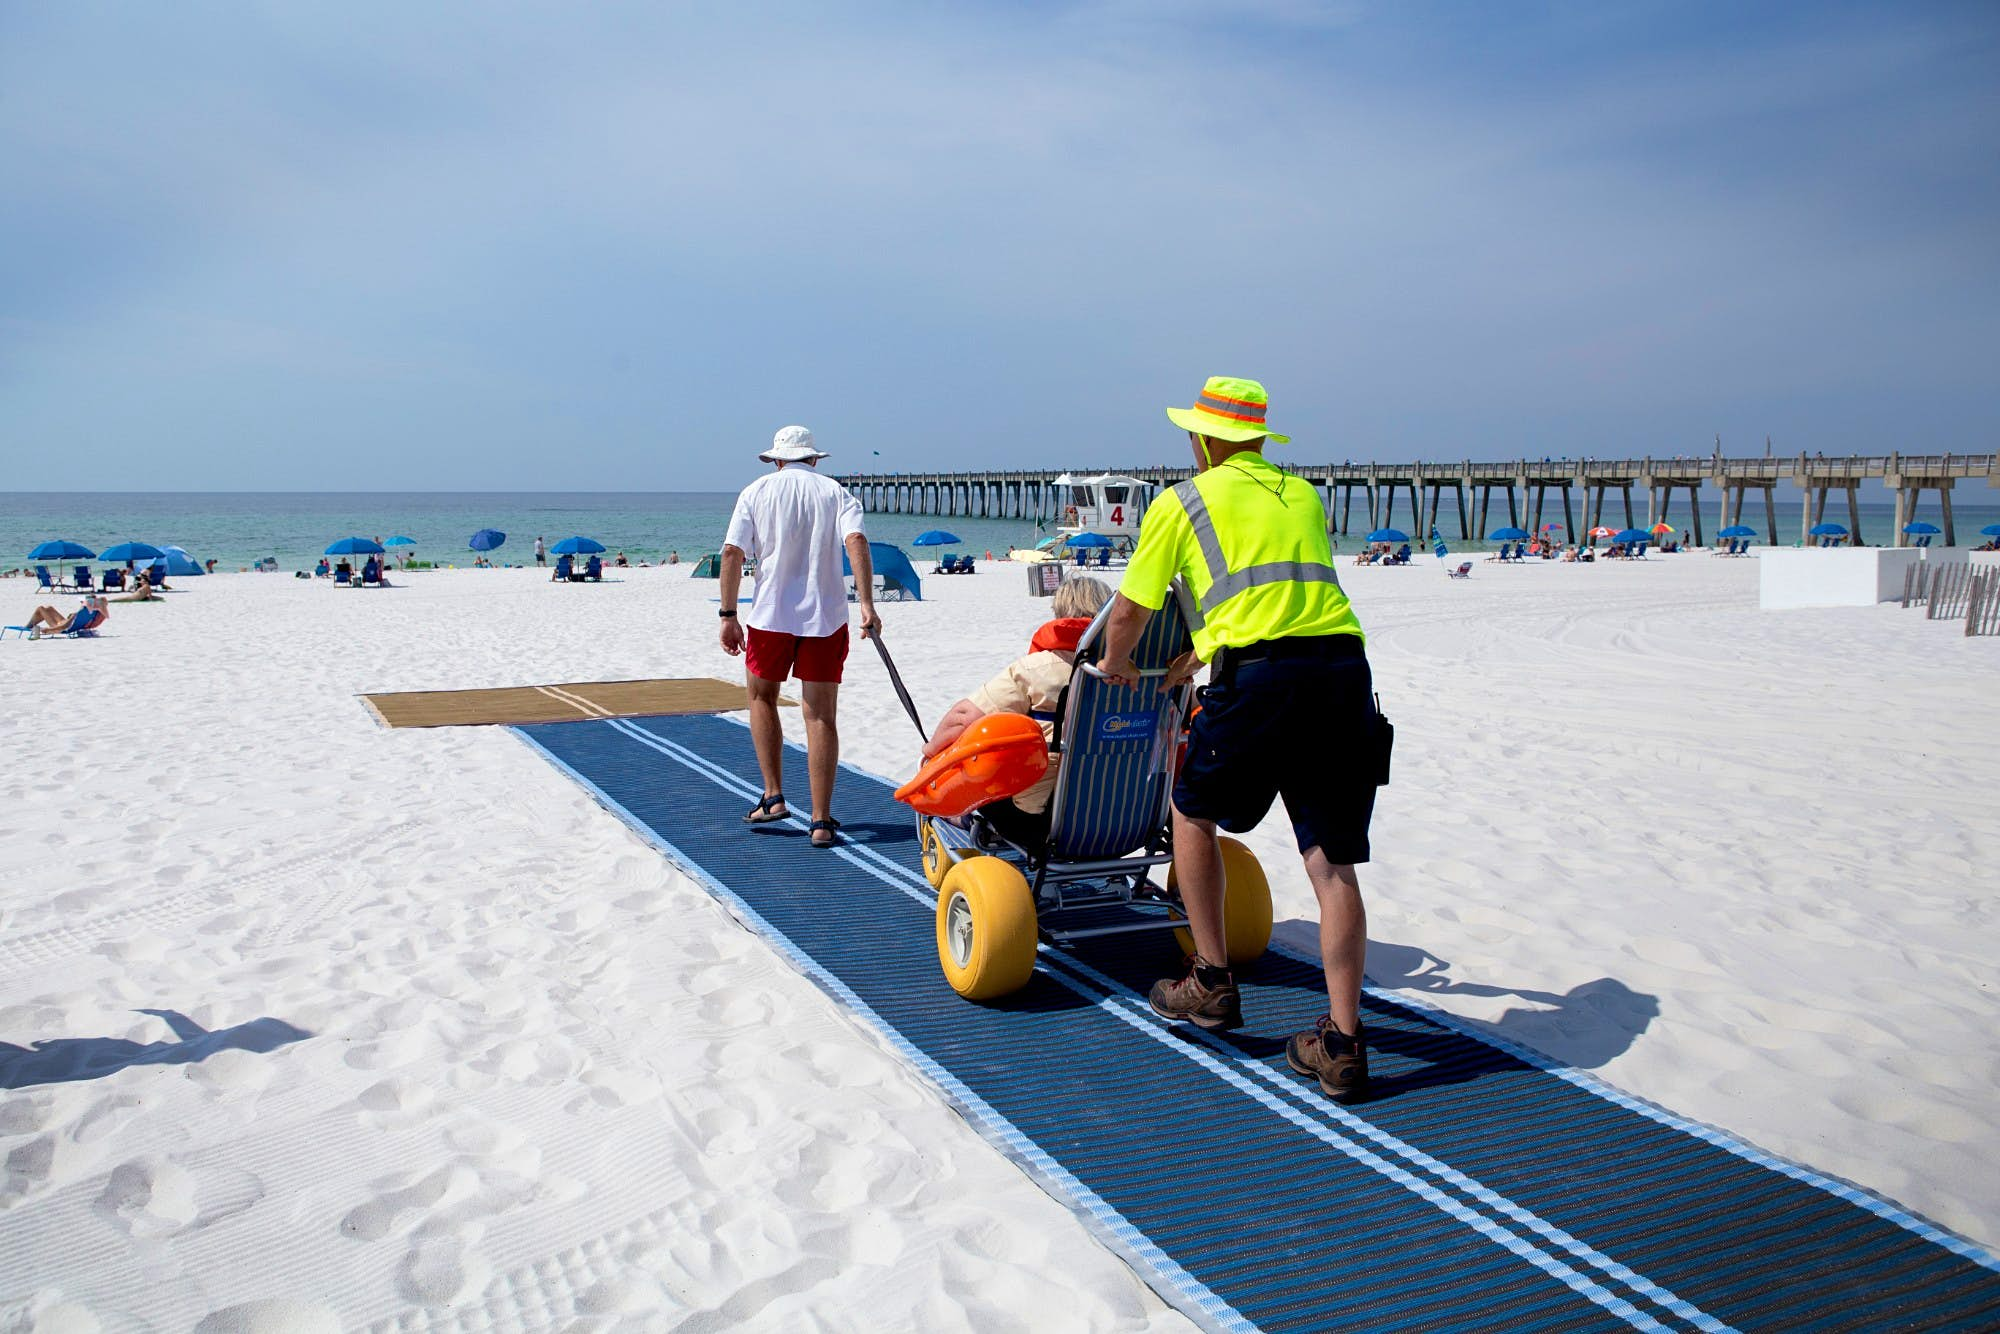 These Florida beaches are now accessible to people in wheelchairs